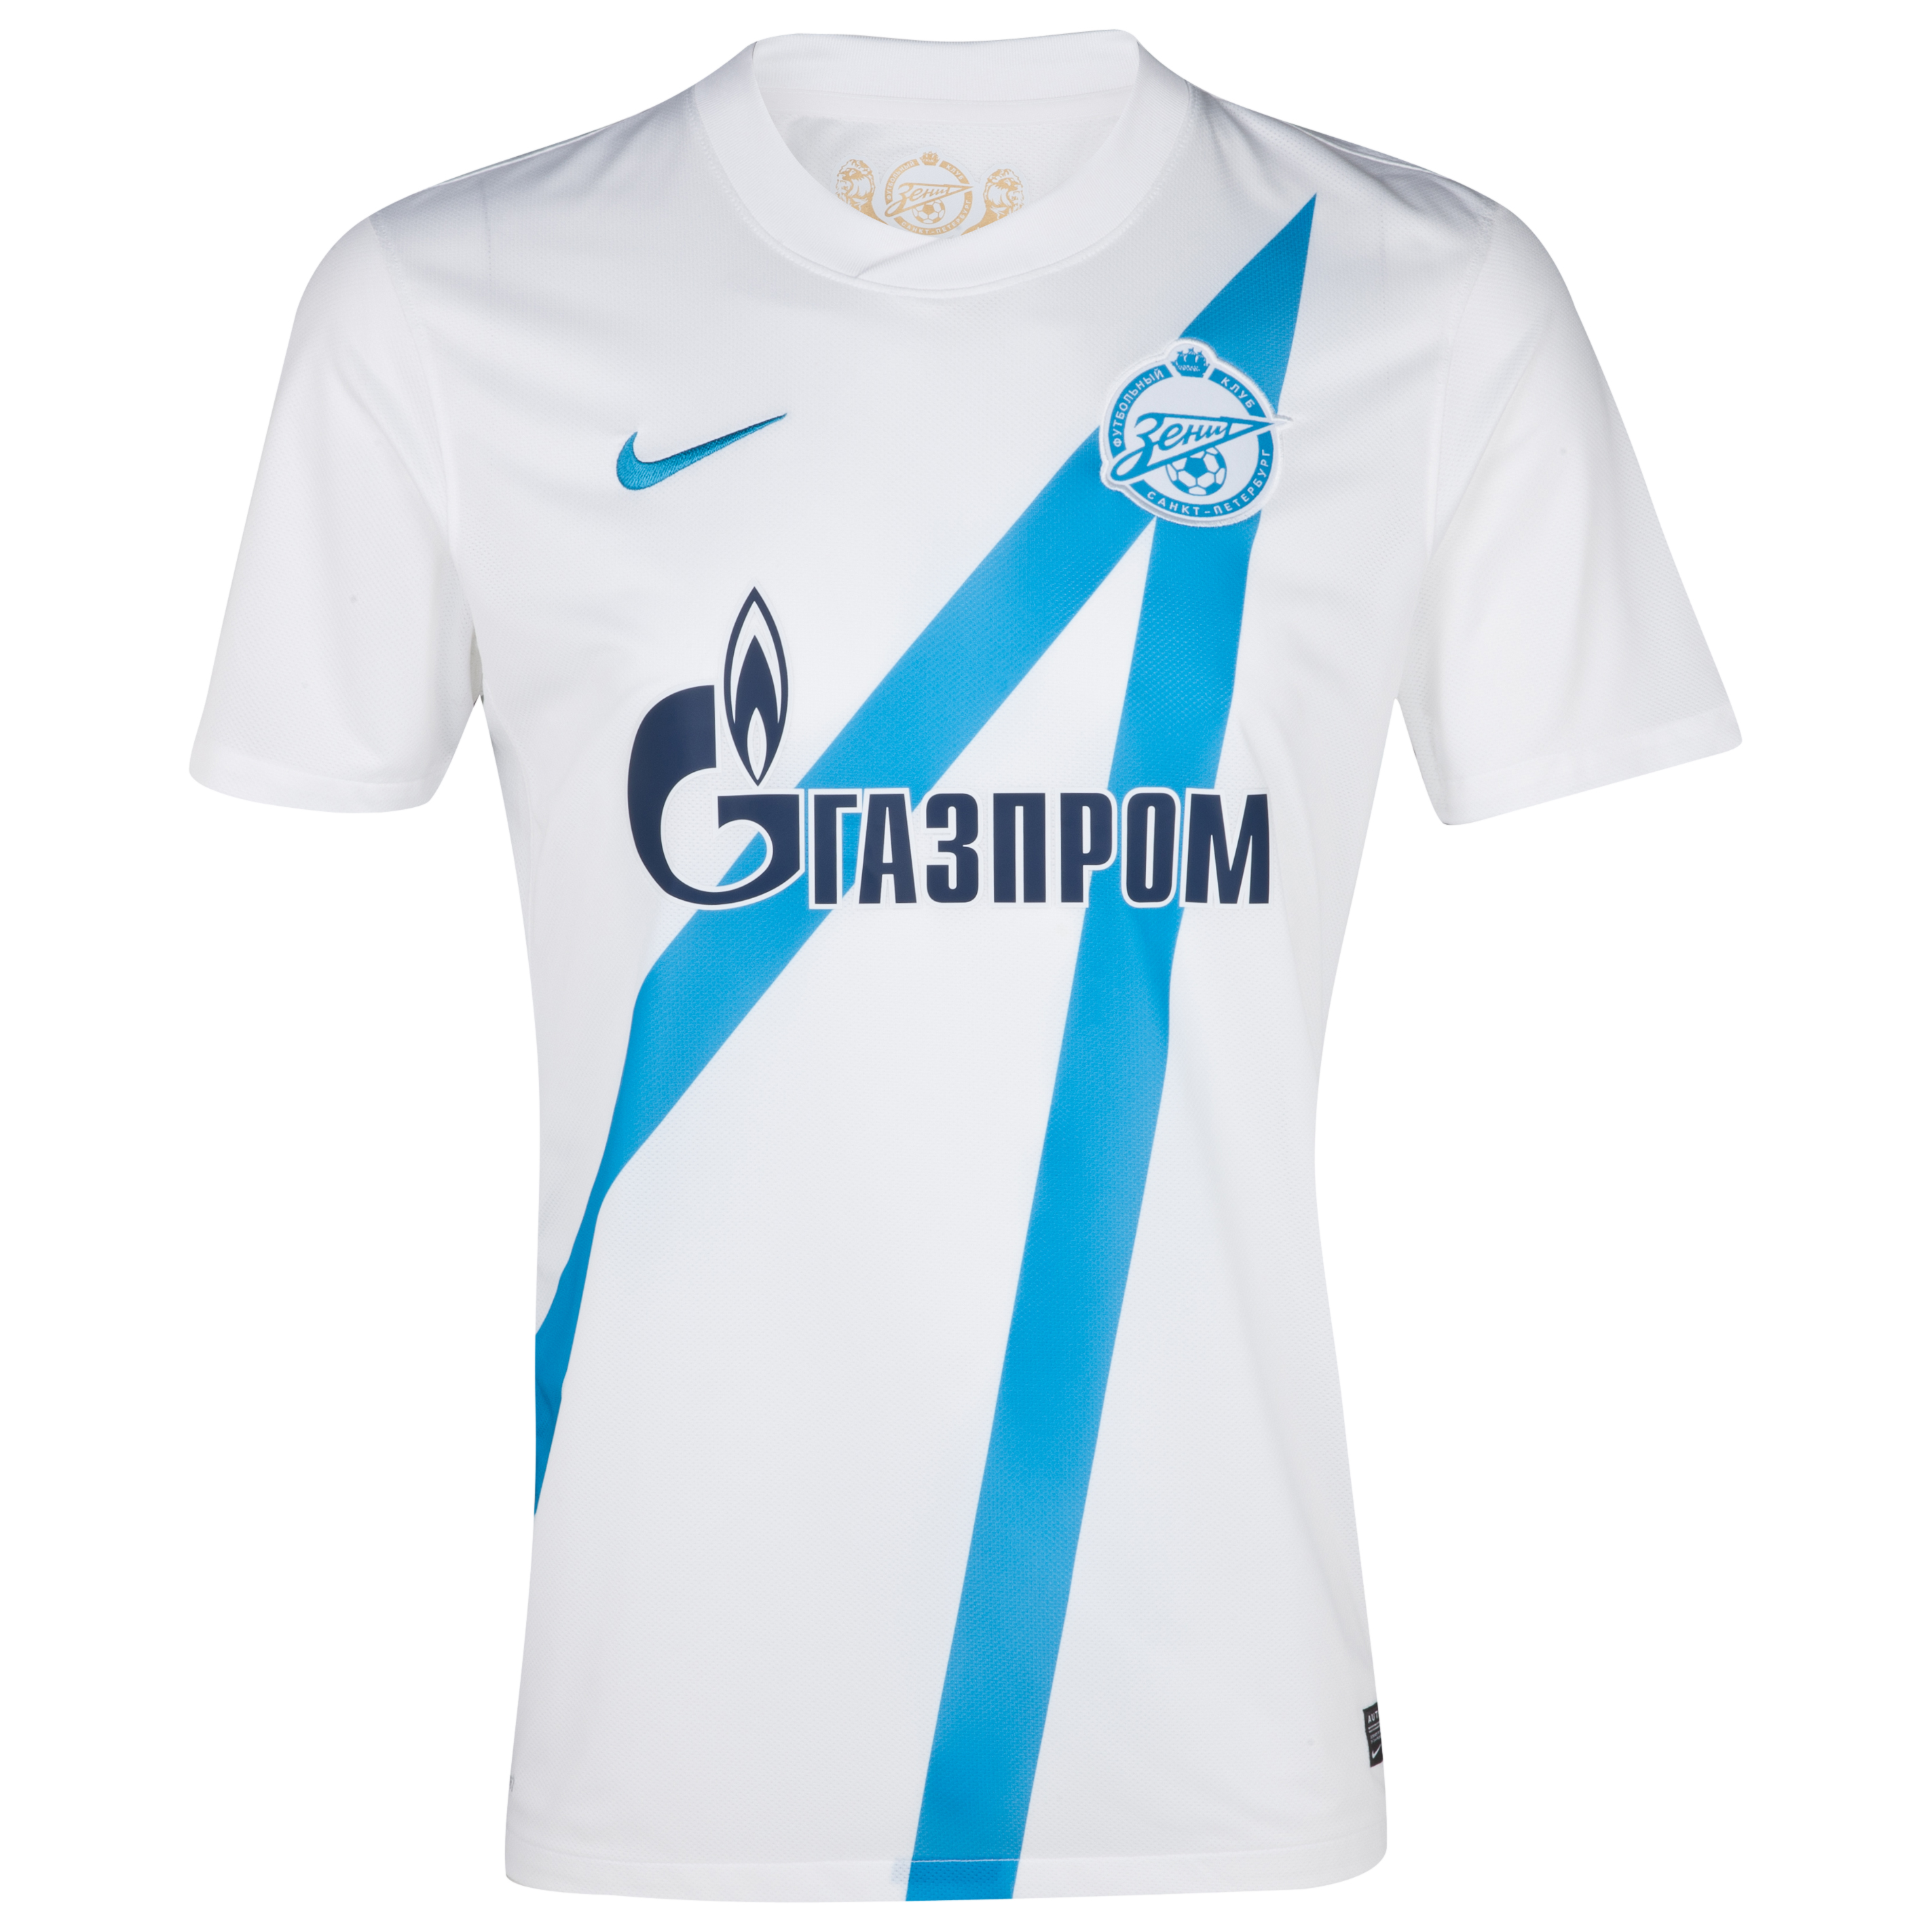 Zenit St. Petersburg 2012/13 Away Shirt Football White/Laser Blue/Laser Blue